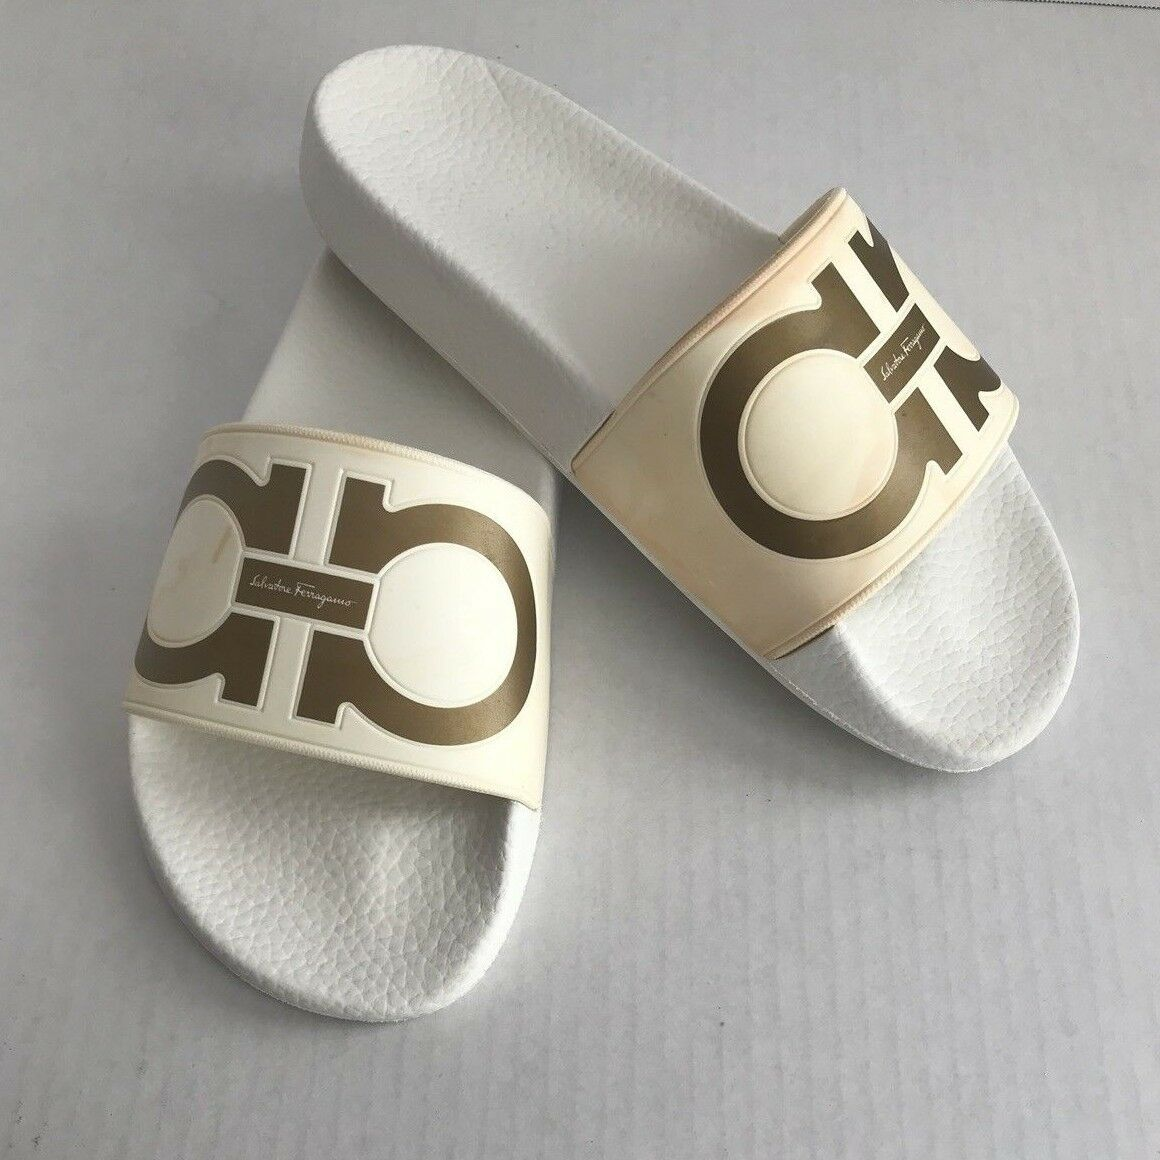 SALVATORE FERRAGAMO Groove Logo Slide Sandals Size 6 White